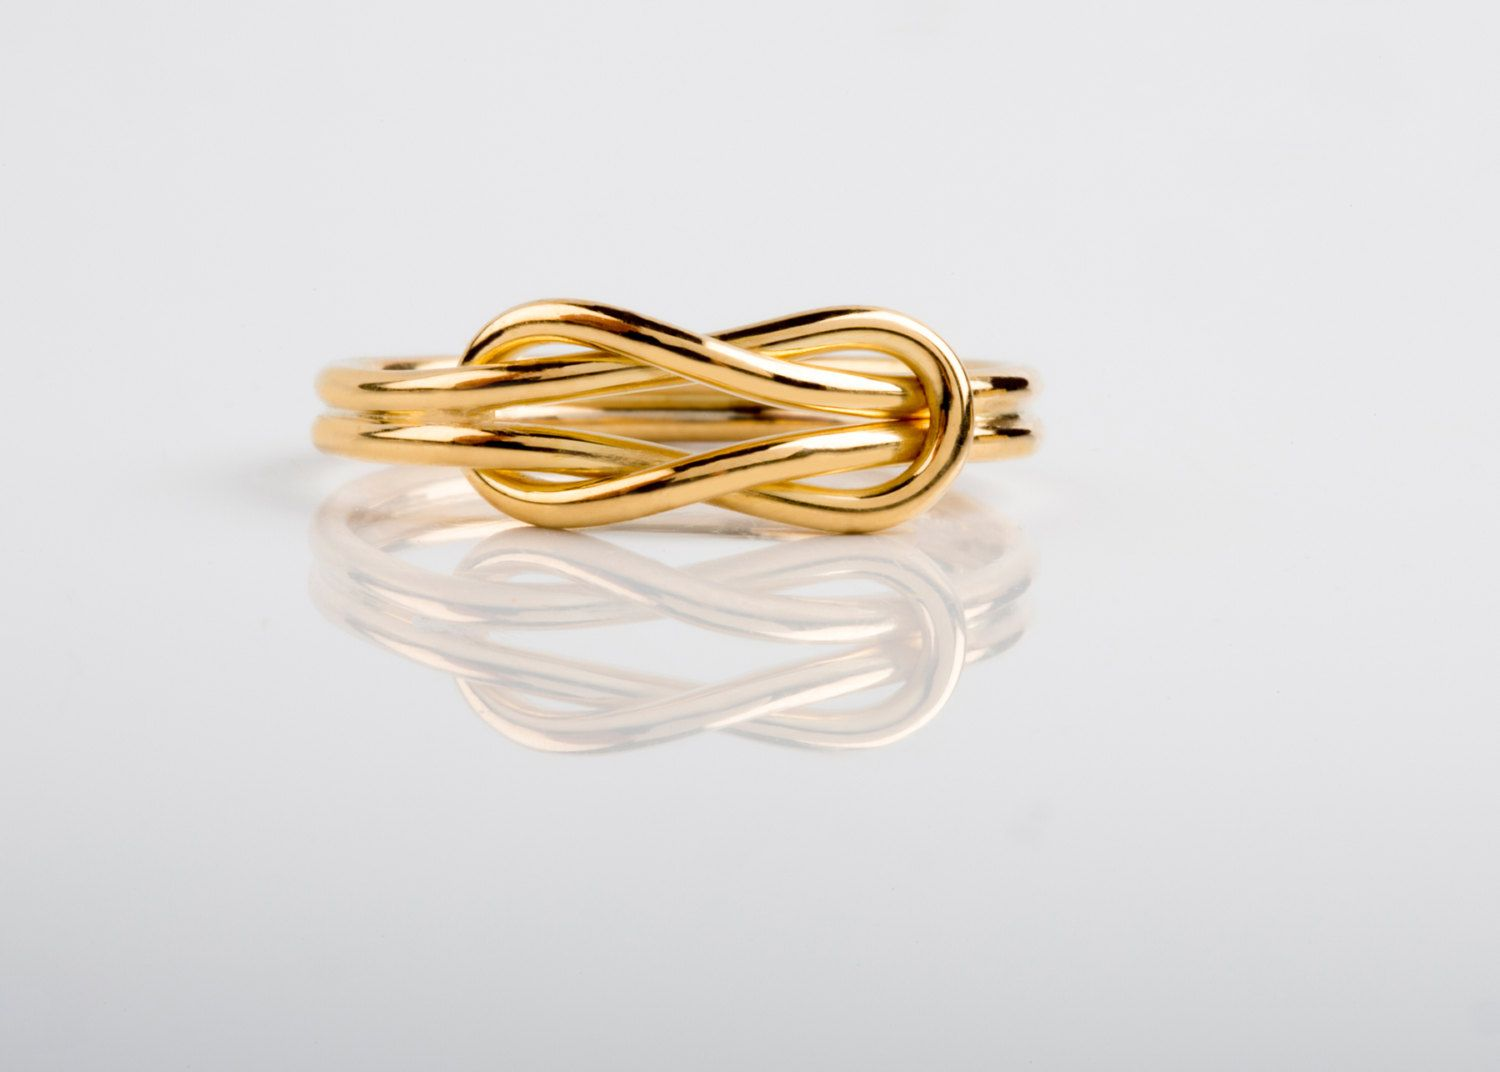 14K / 18K Solid Gold, Infinity Knot Ring, Gold Wire Ring, Solid Gold ...